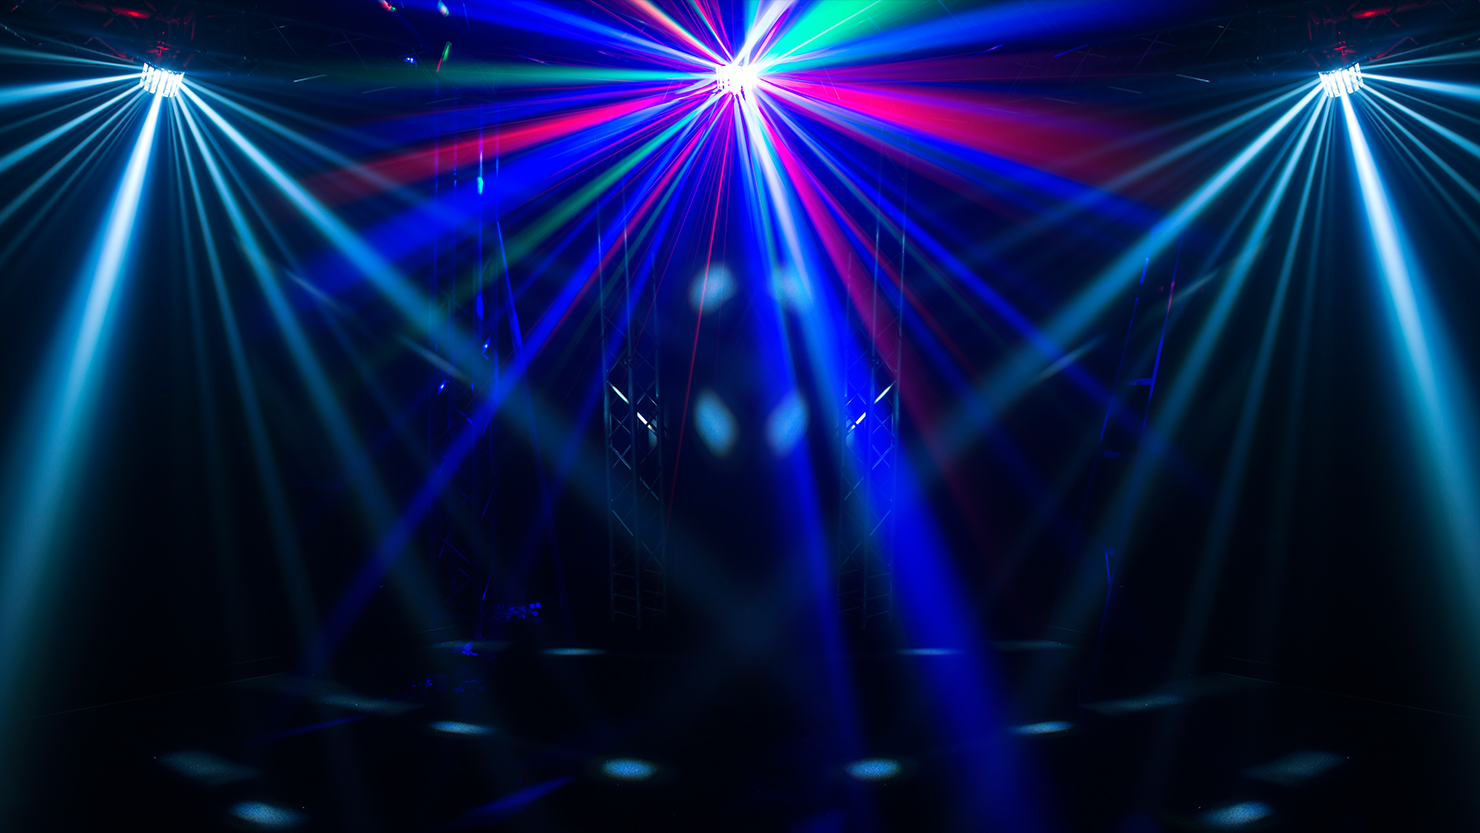 Kinta Fx Chauvet Dj Led Strobe Light Circuit With Chasing Flashing Effects Electronic Images Videos